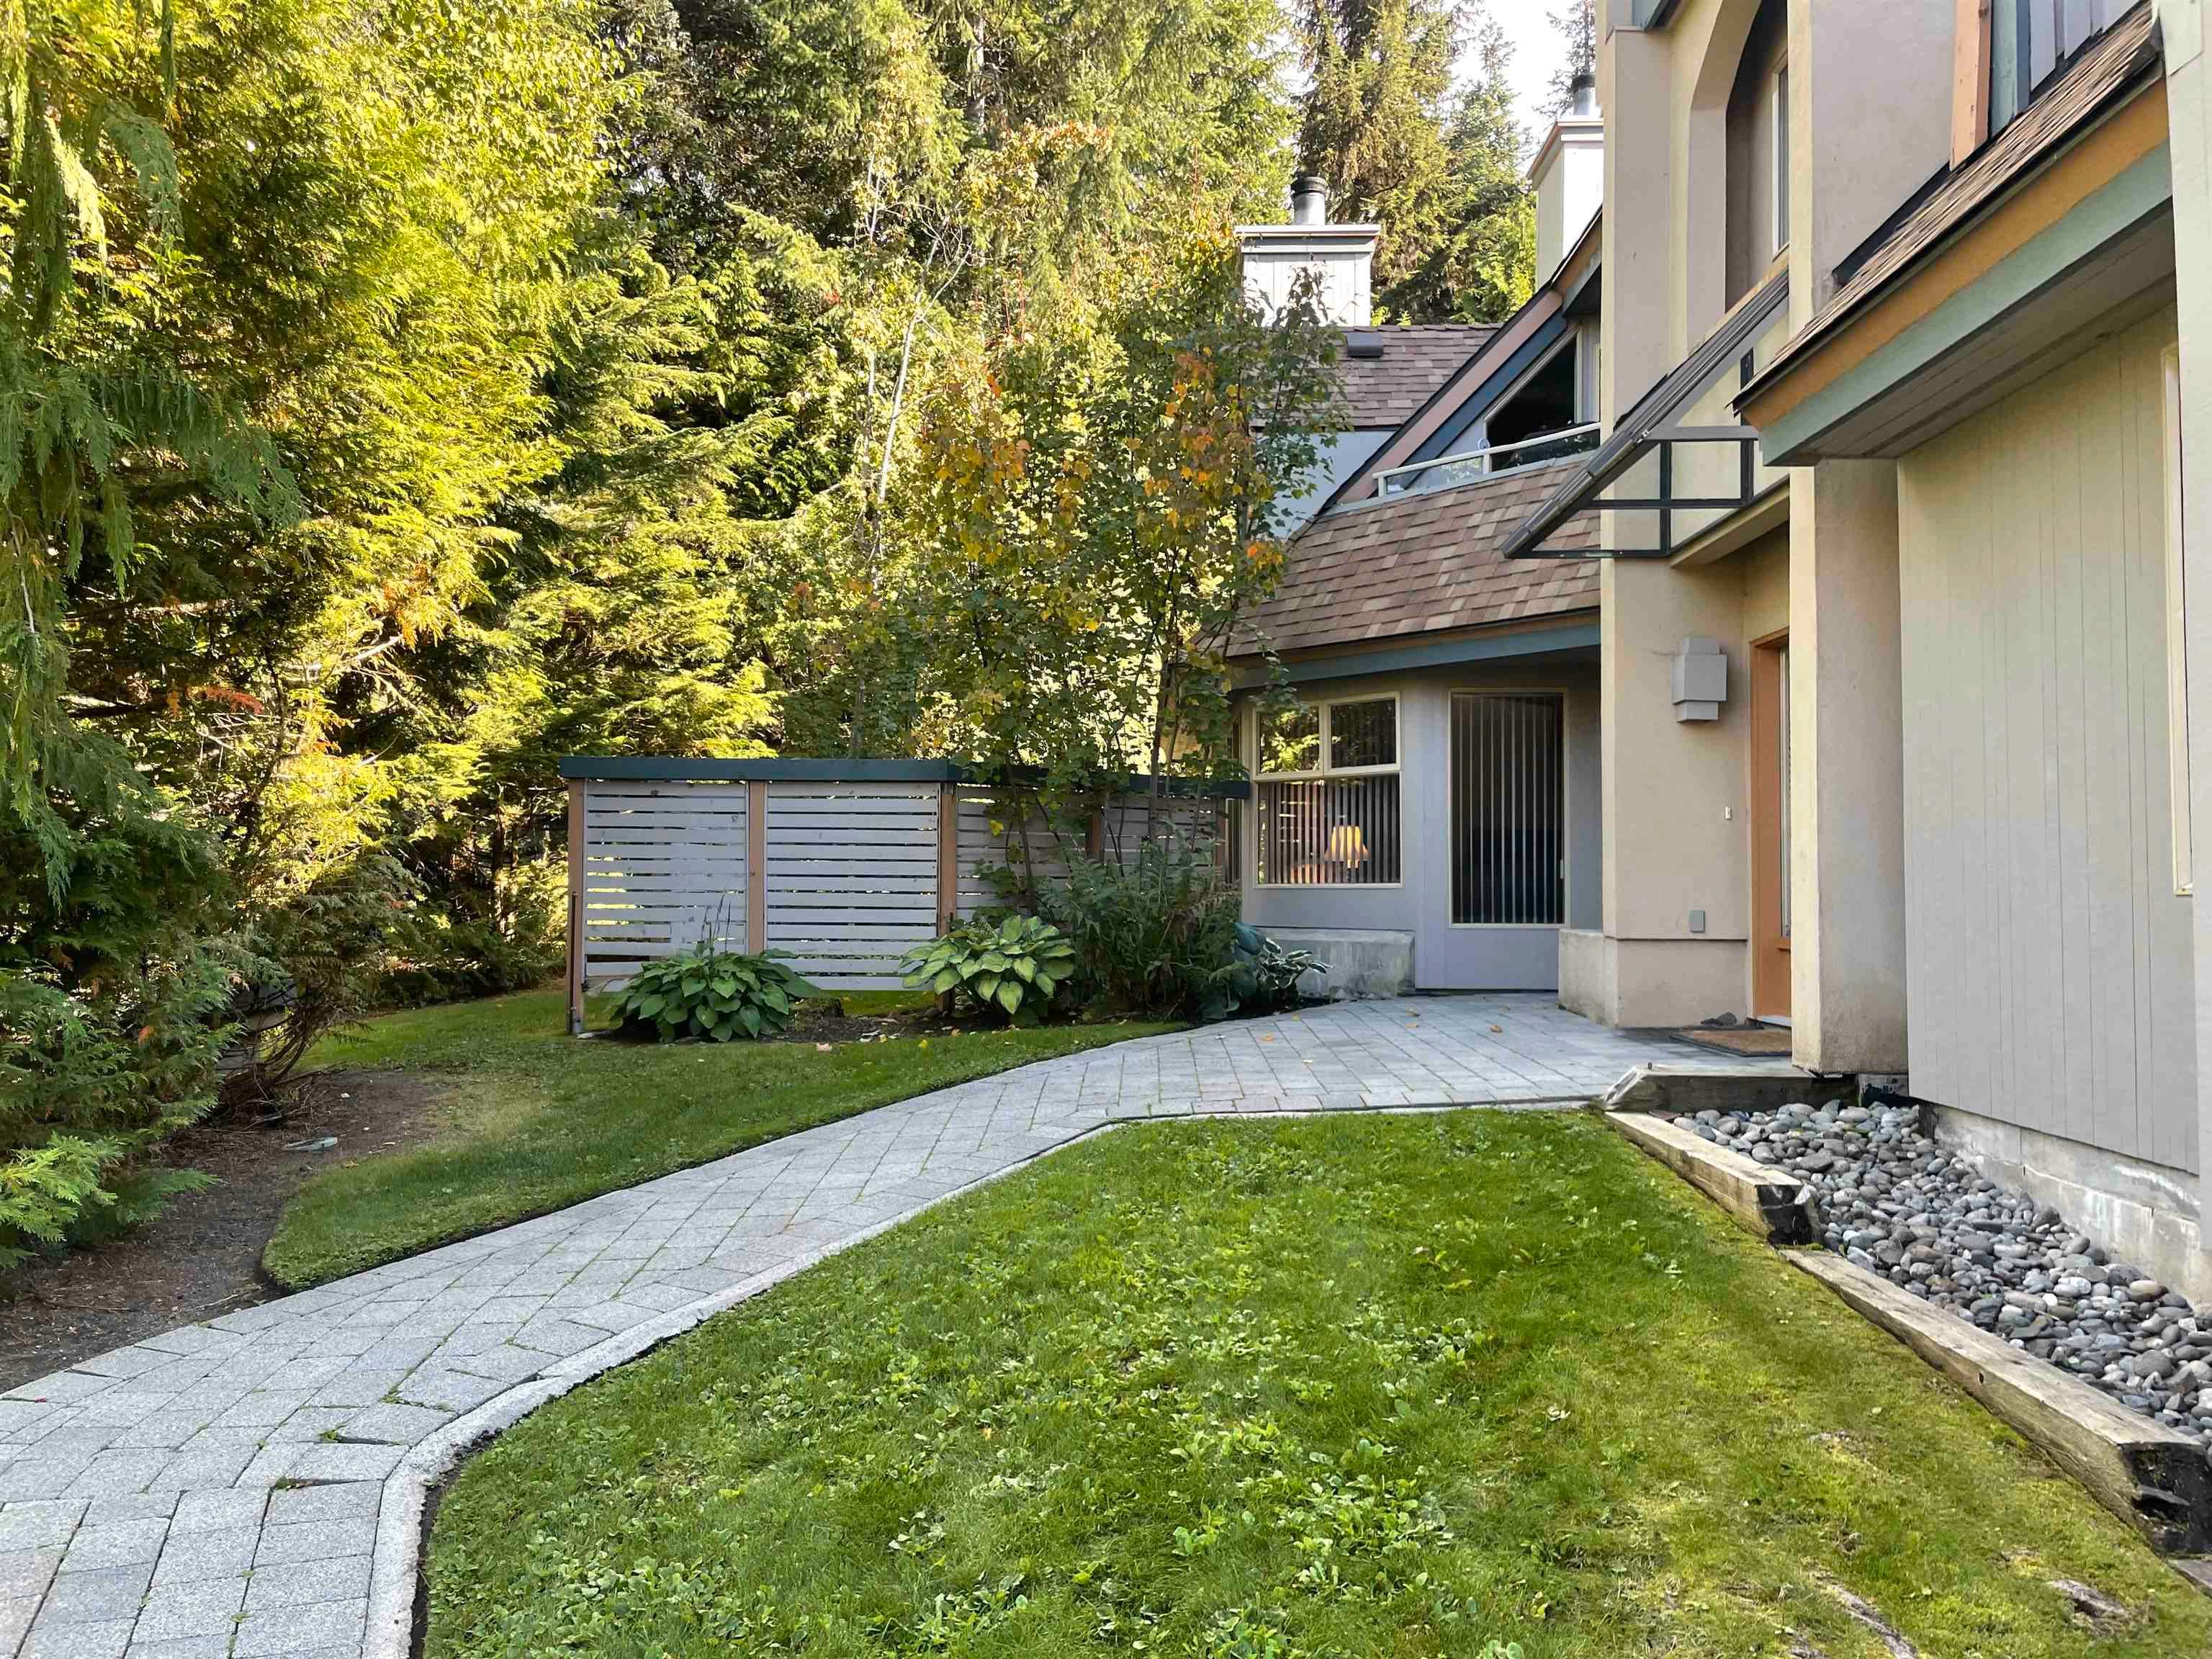 """Main Photo: 6 4636 BLACKCOMB Way in Whistler: Benchlands Townhouse for sale in """"Gleneagles"""" : MLS®# R2619052"""